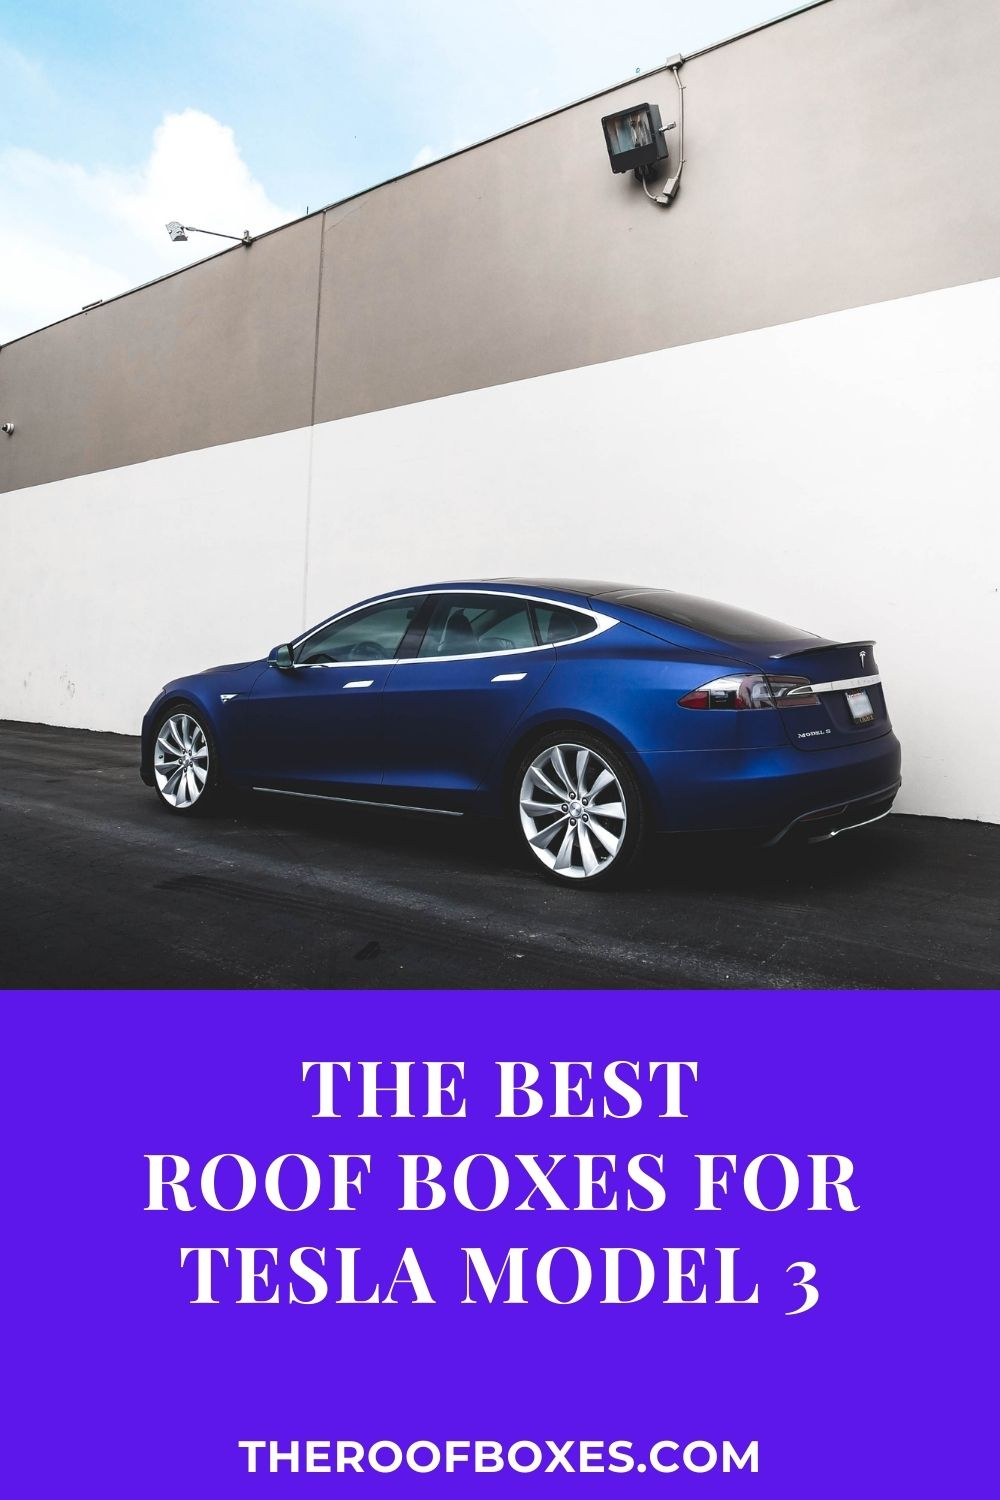 Tesla Model 3 Roof Box – Reviews and Comparison